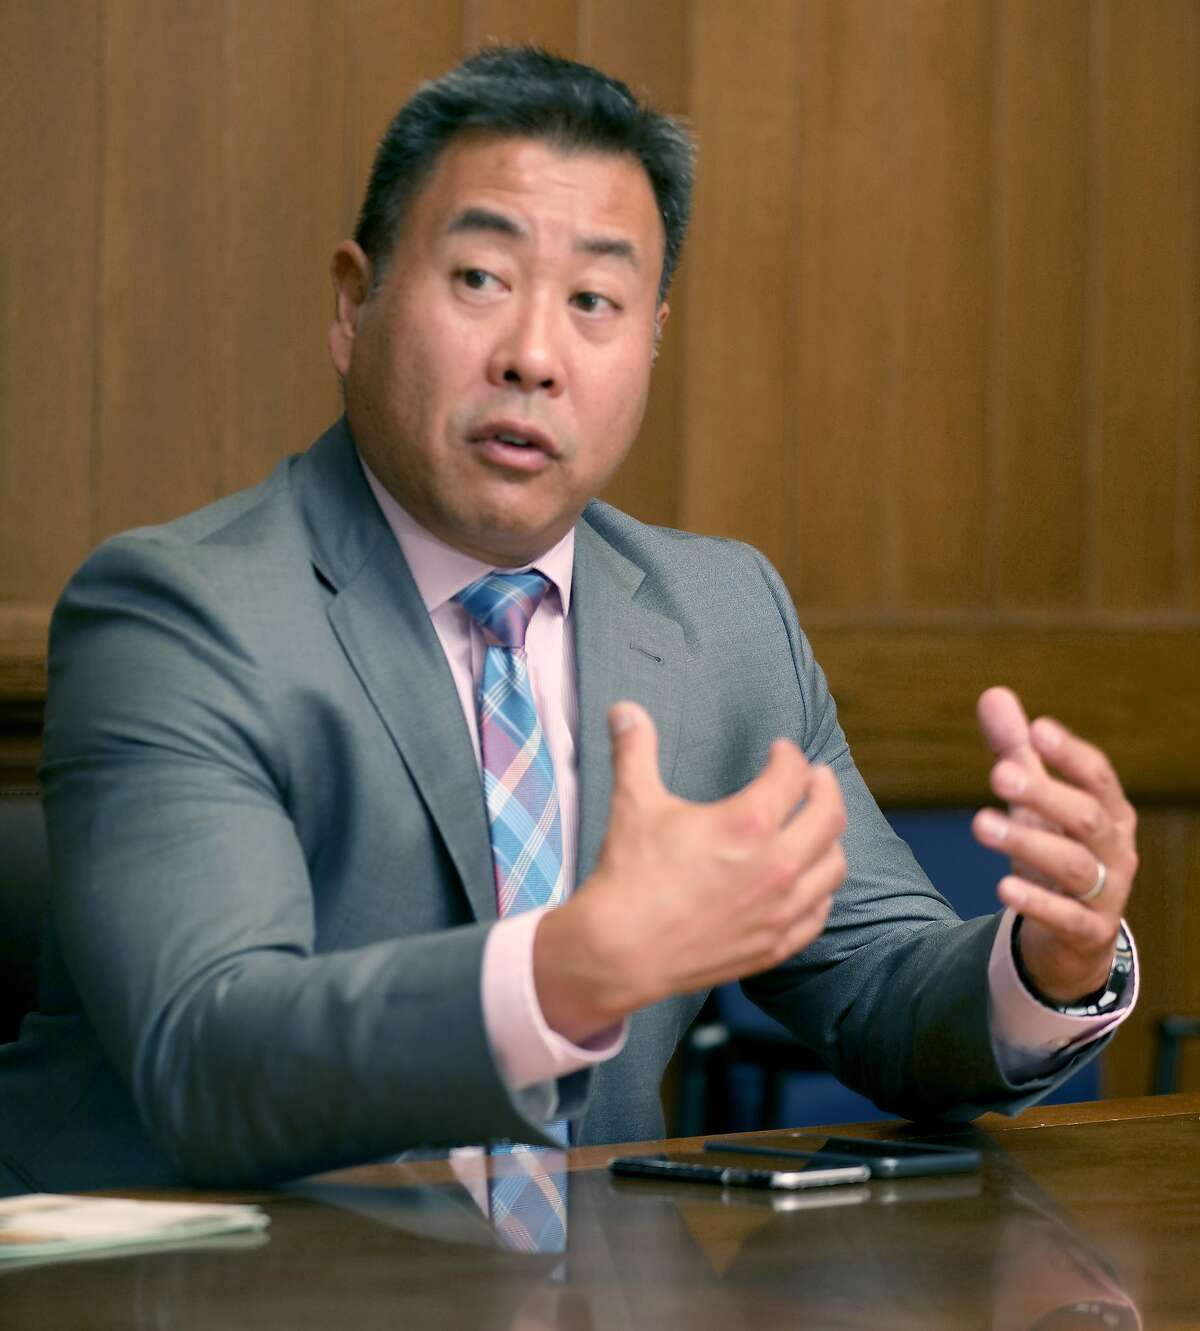 Sheriff Paul Miyamoto meets with the Chronicle editorial board about his election campaign at the SF Chronicle on Wednesday, Sept. 18, 2019 in San Francisco, Calif.